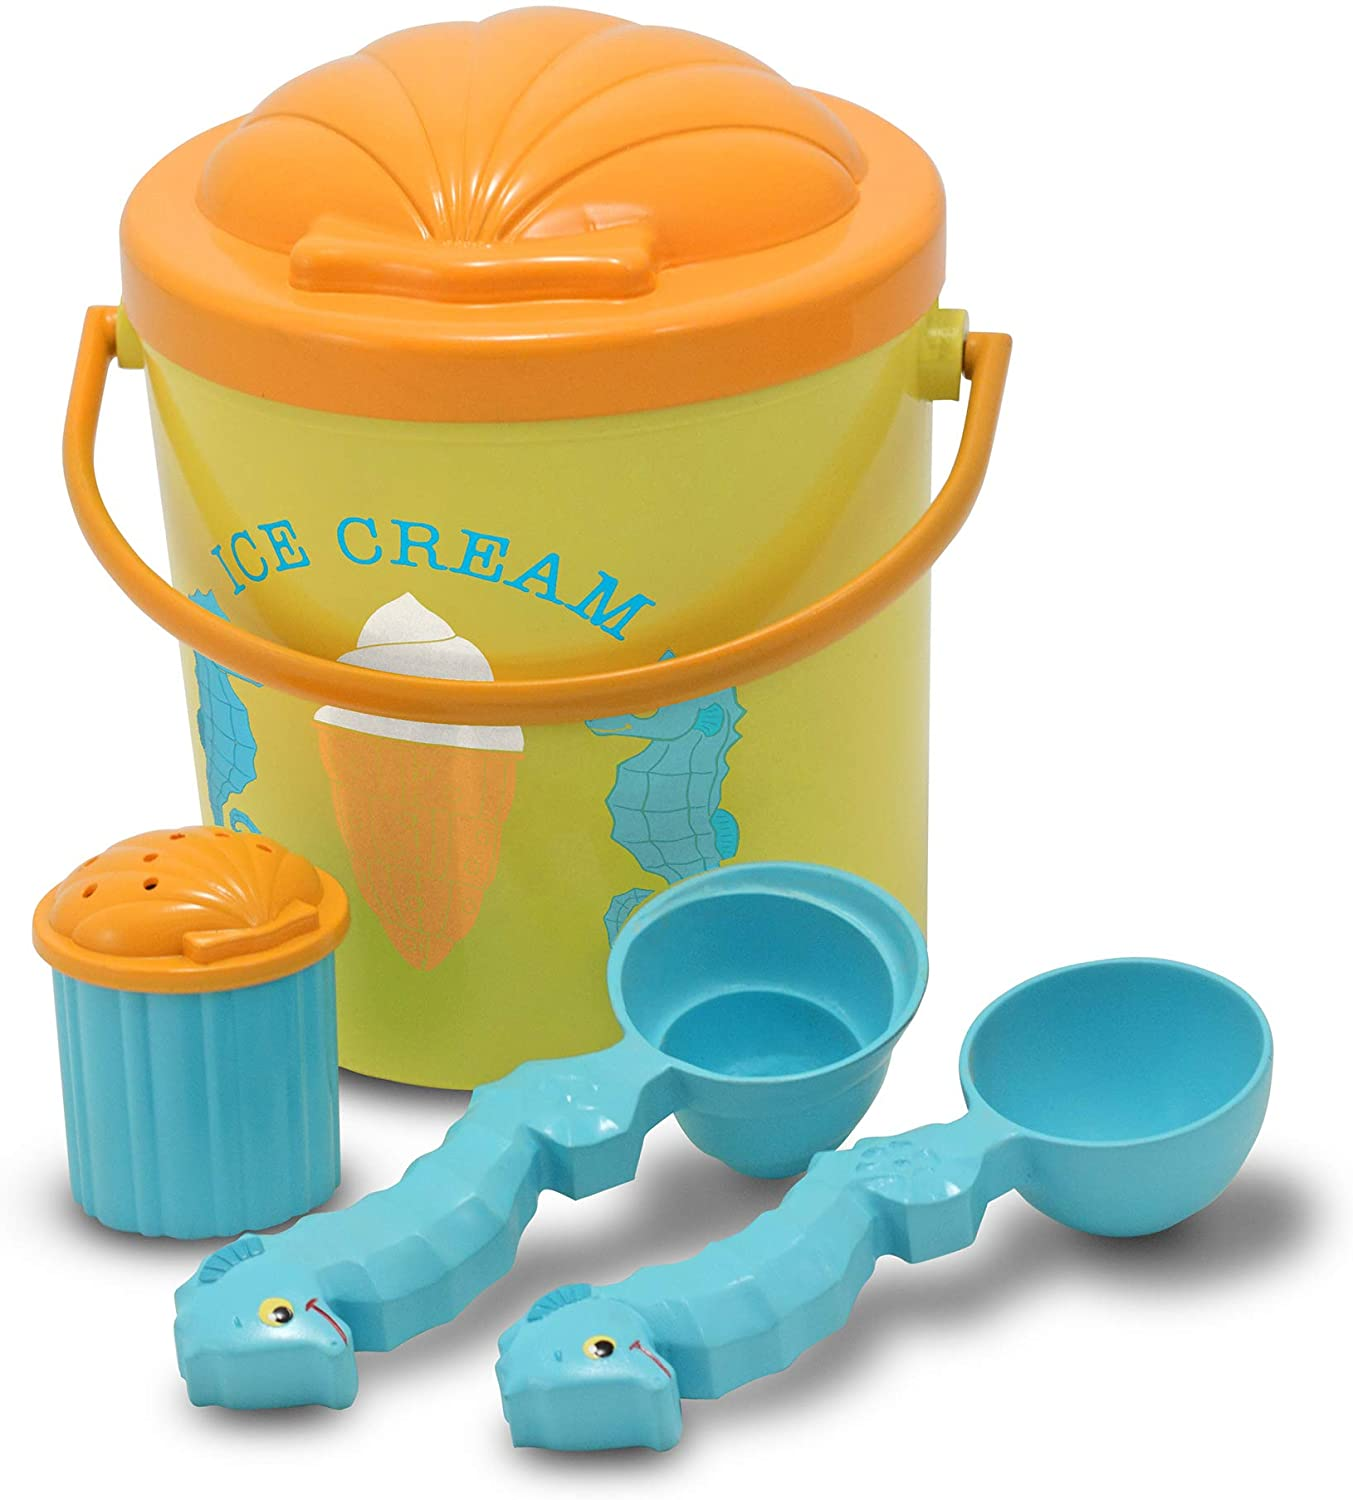 Melissa & Doug Speck Seahorse Sand Ice Cream Set,White